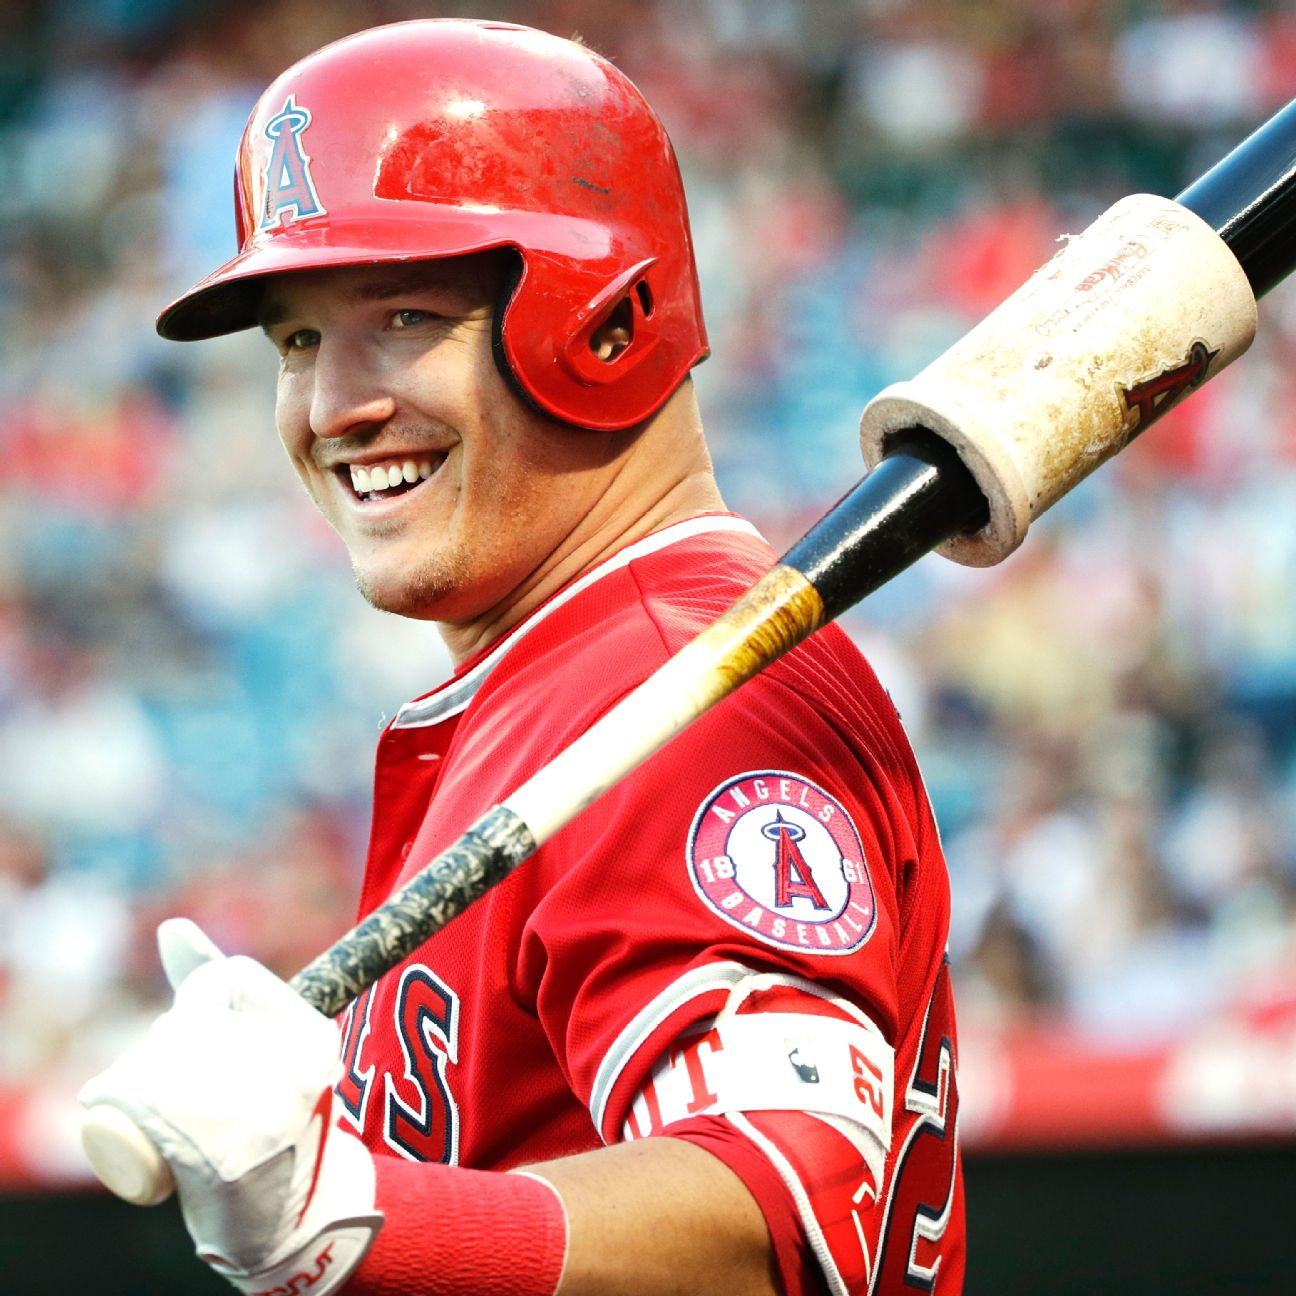 mike trout - photo #25